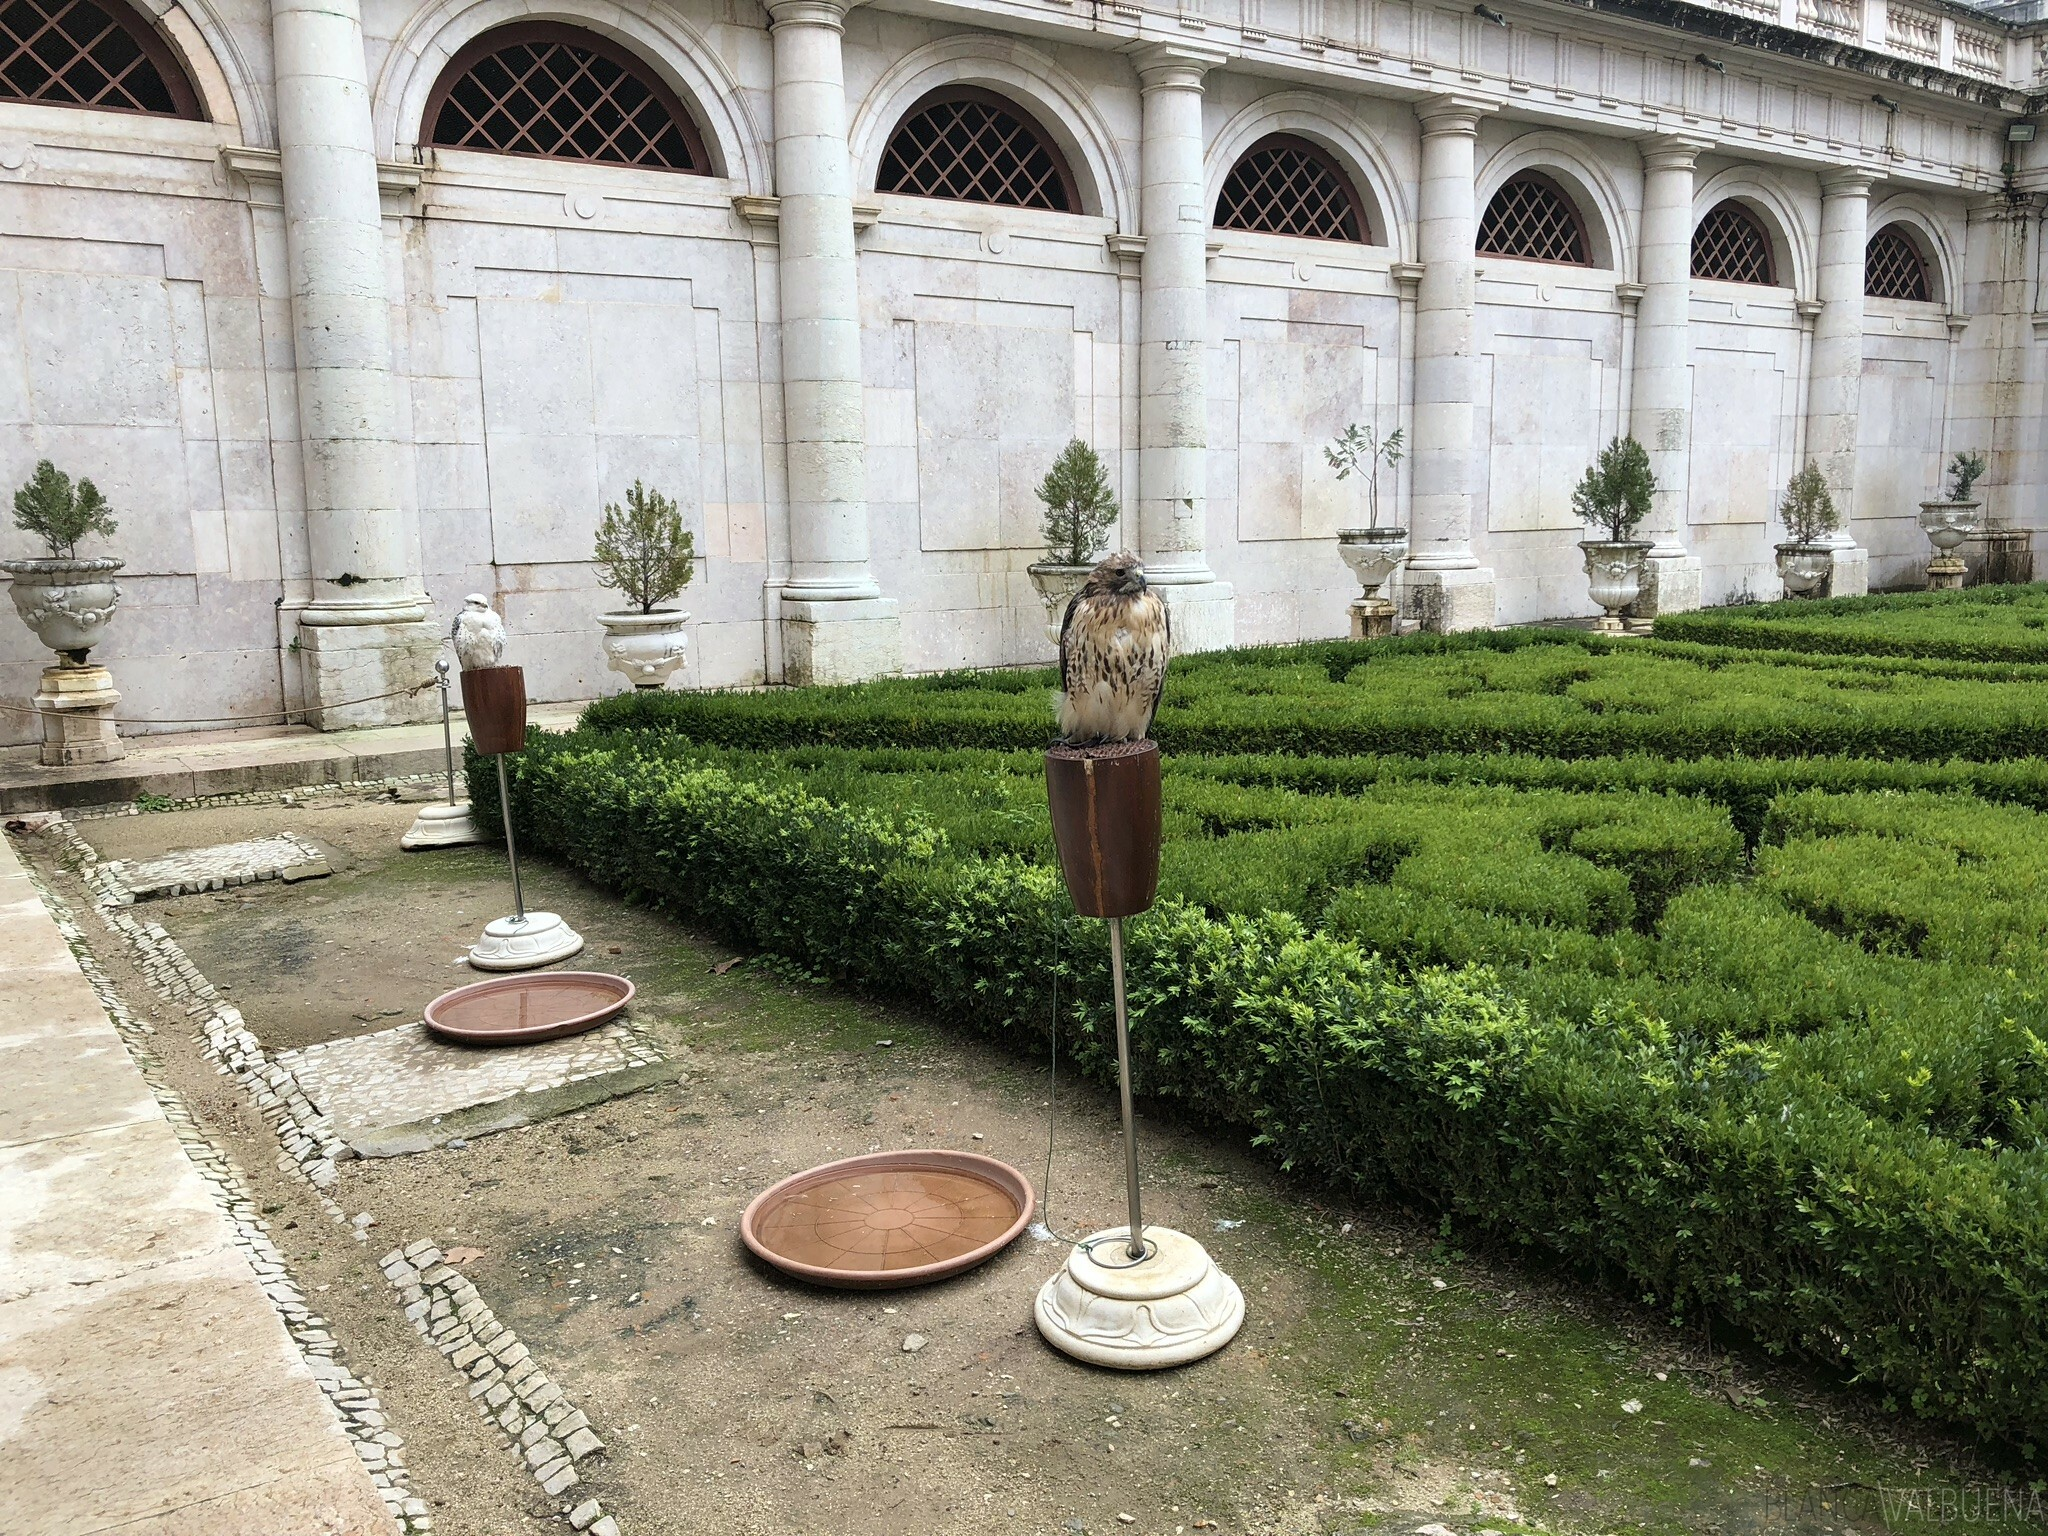 Mafra's palace is a great learning place for kids